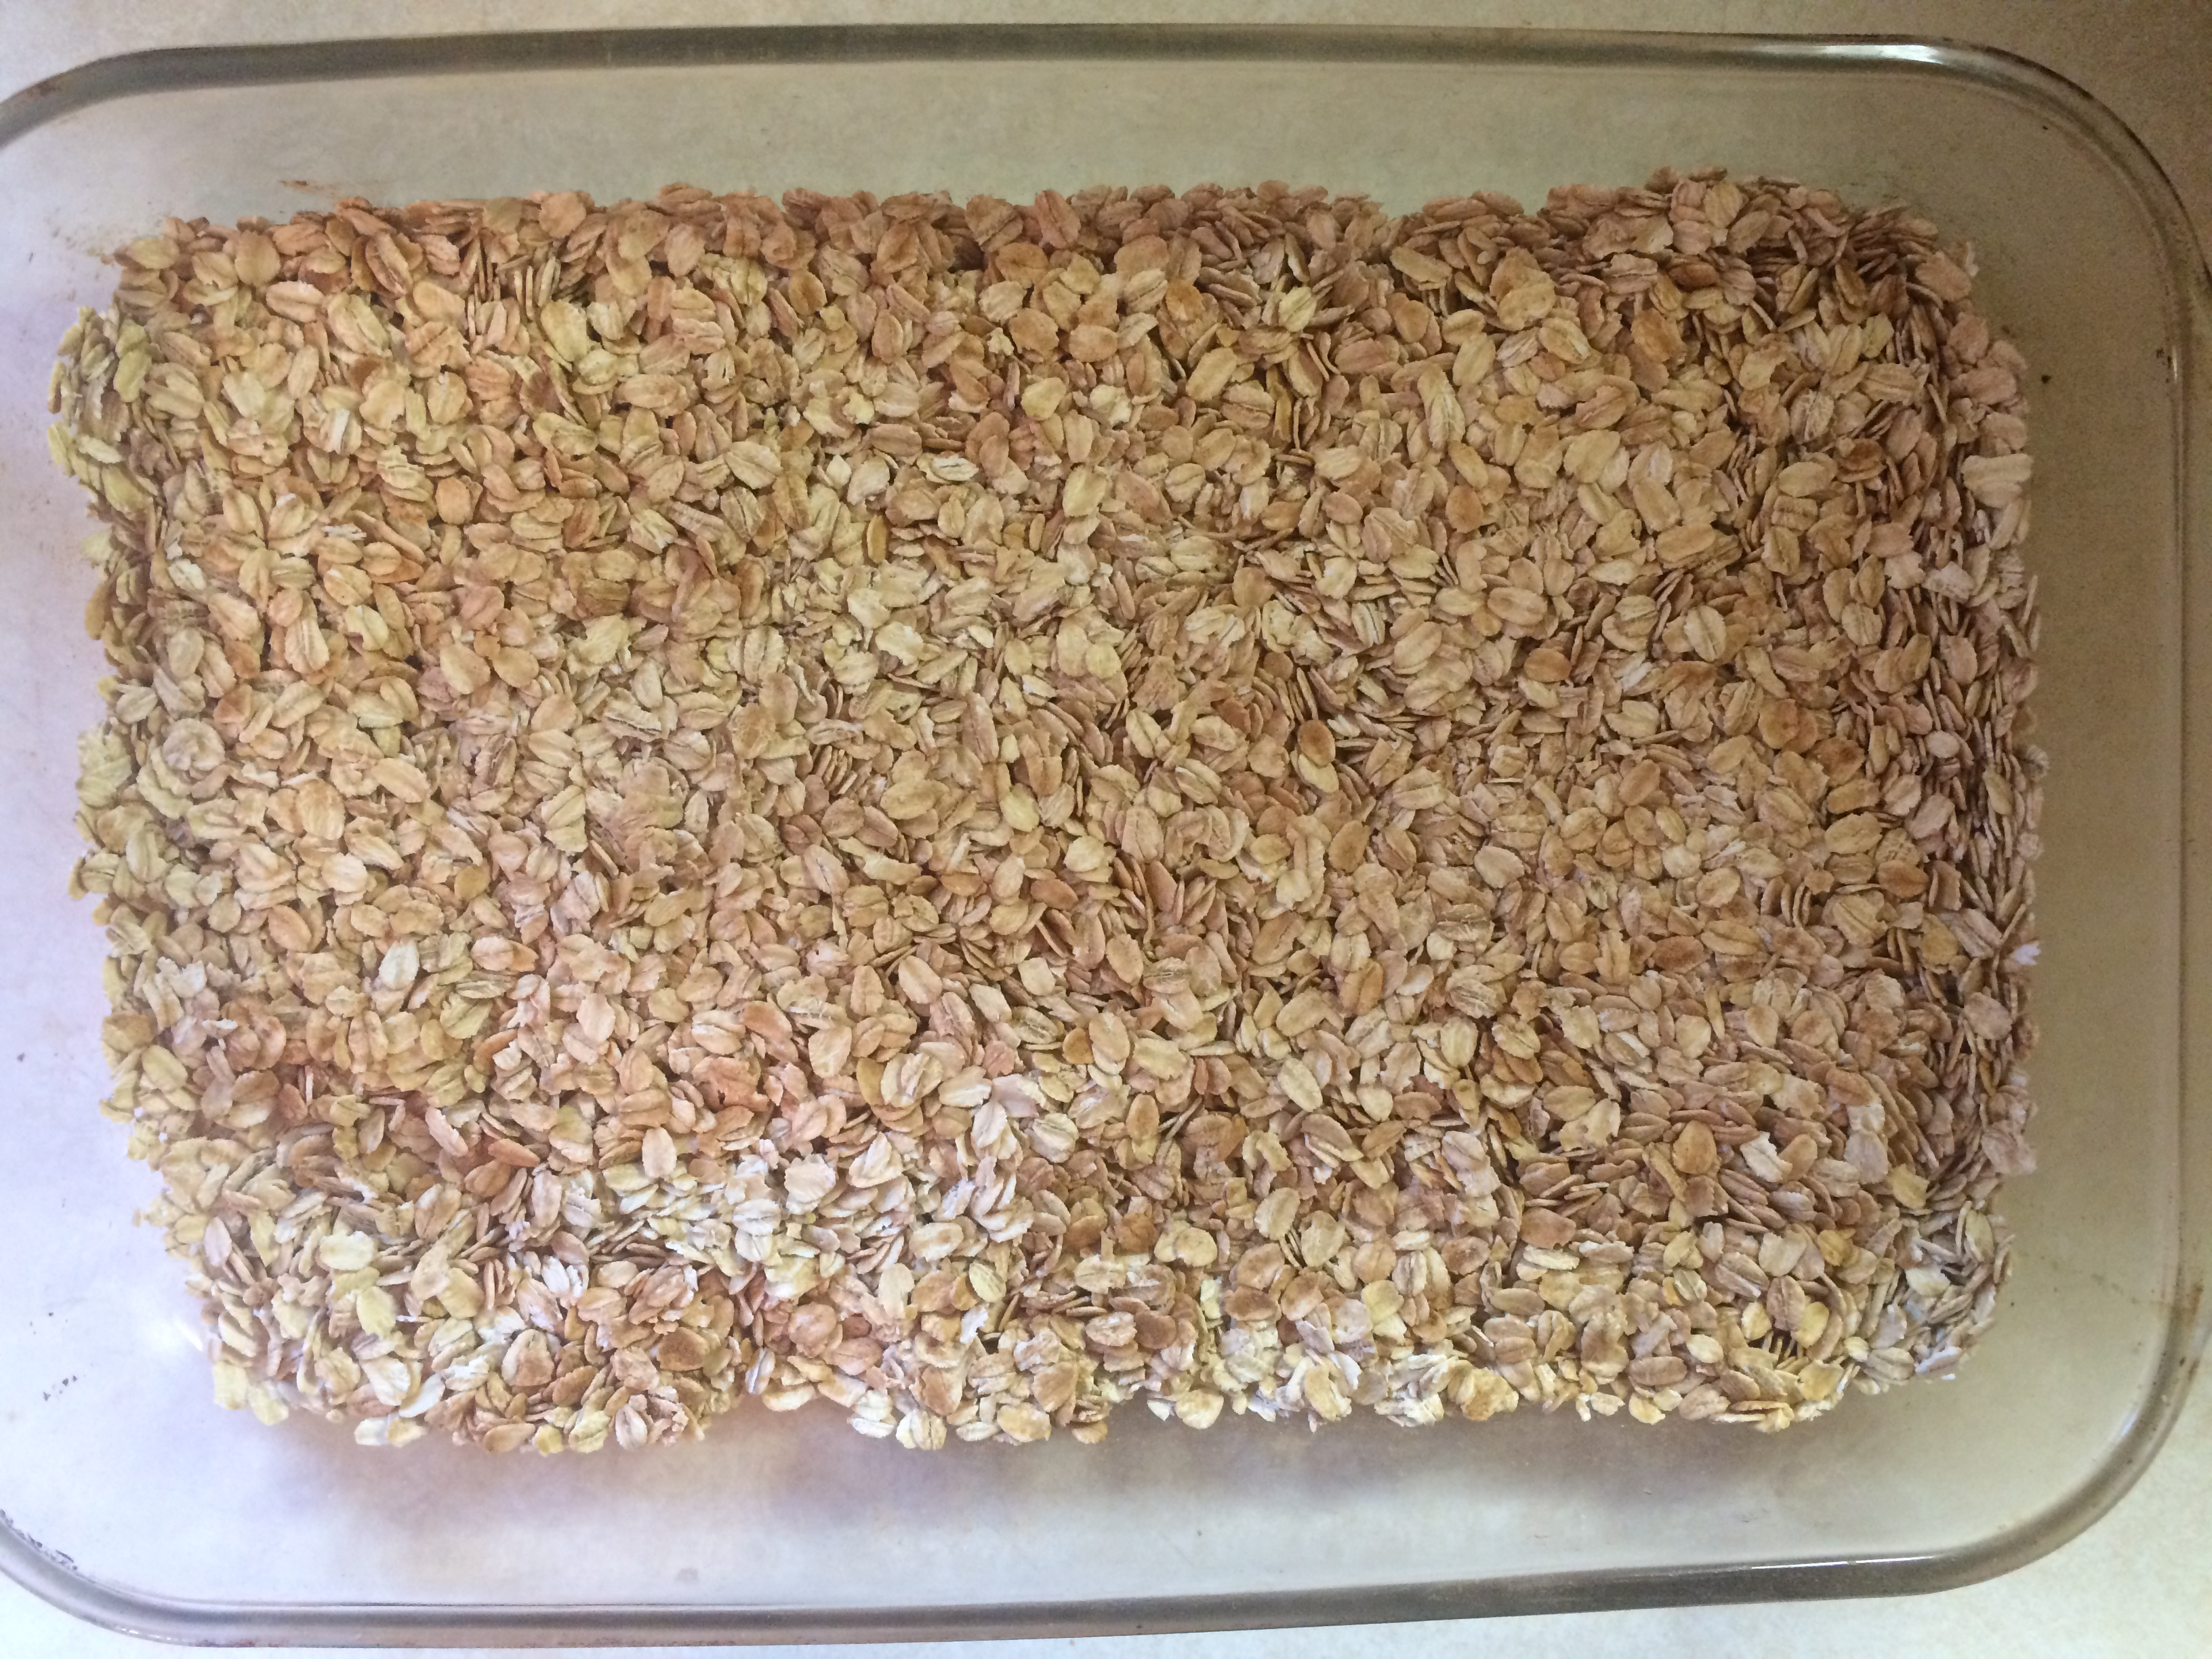 Organic Rolled Oats in a Glass Baking Pan